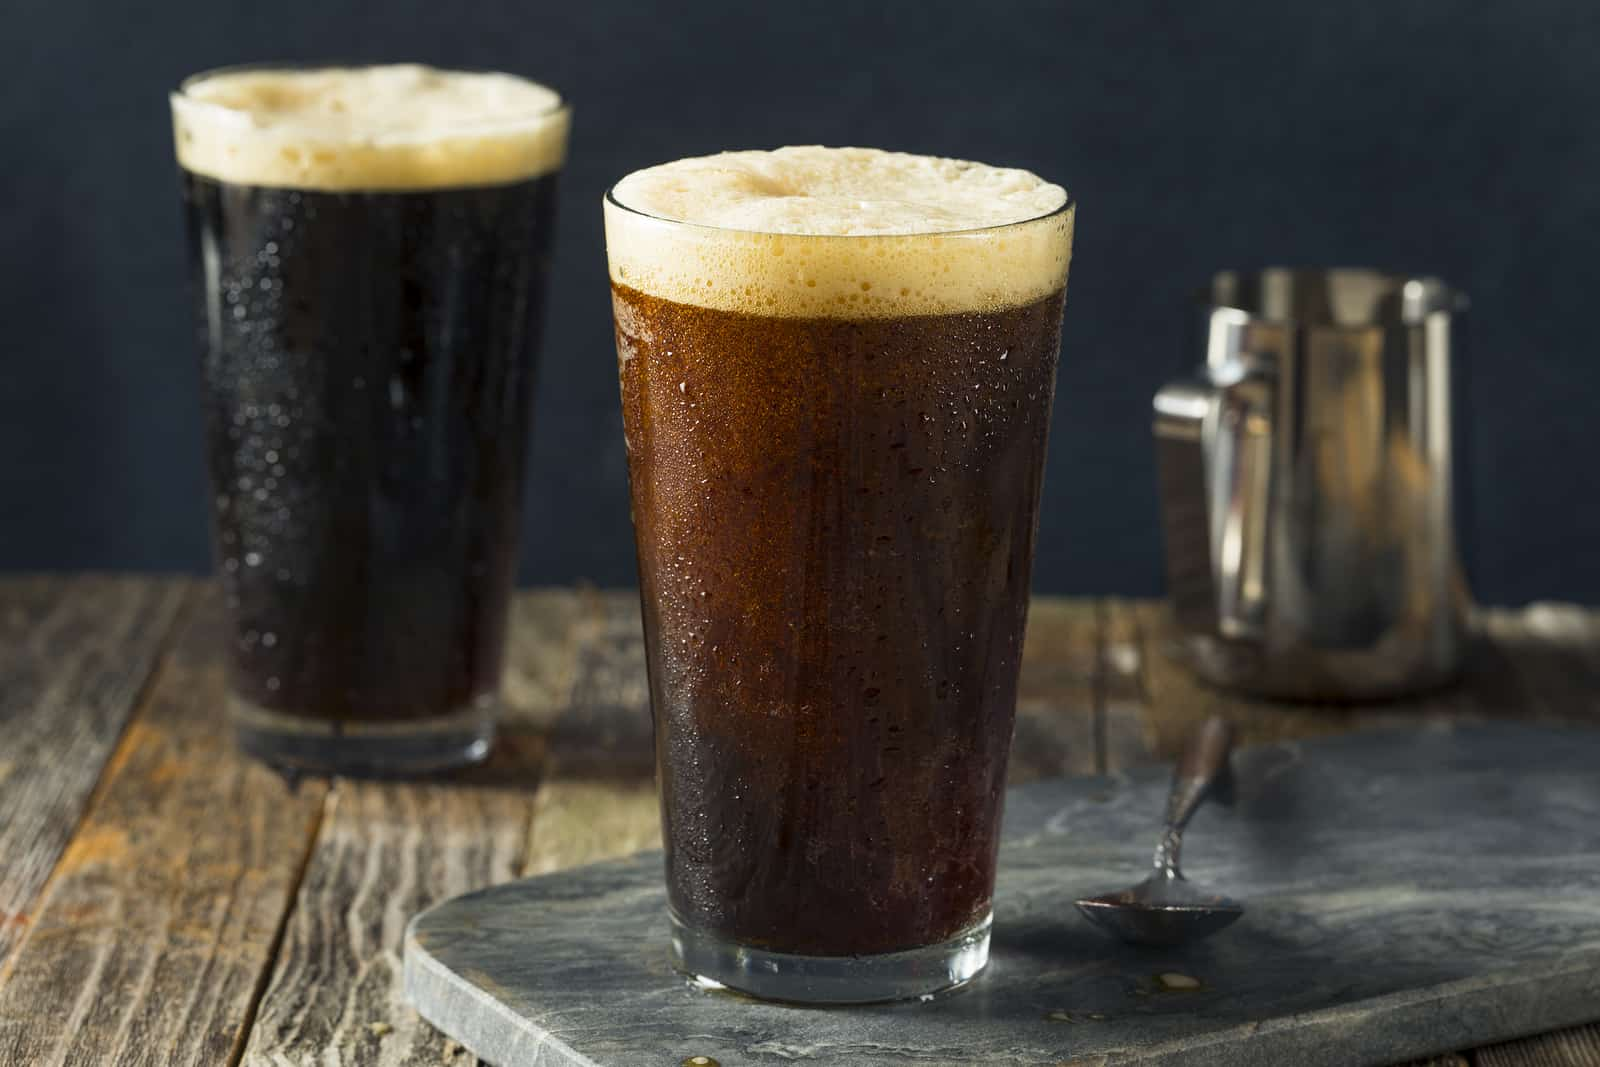 Thirteen Fifty-Six Public House Goes Nitro with Cold Brew Coffee